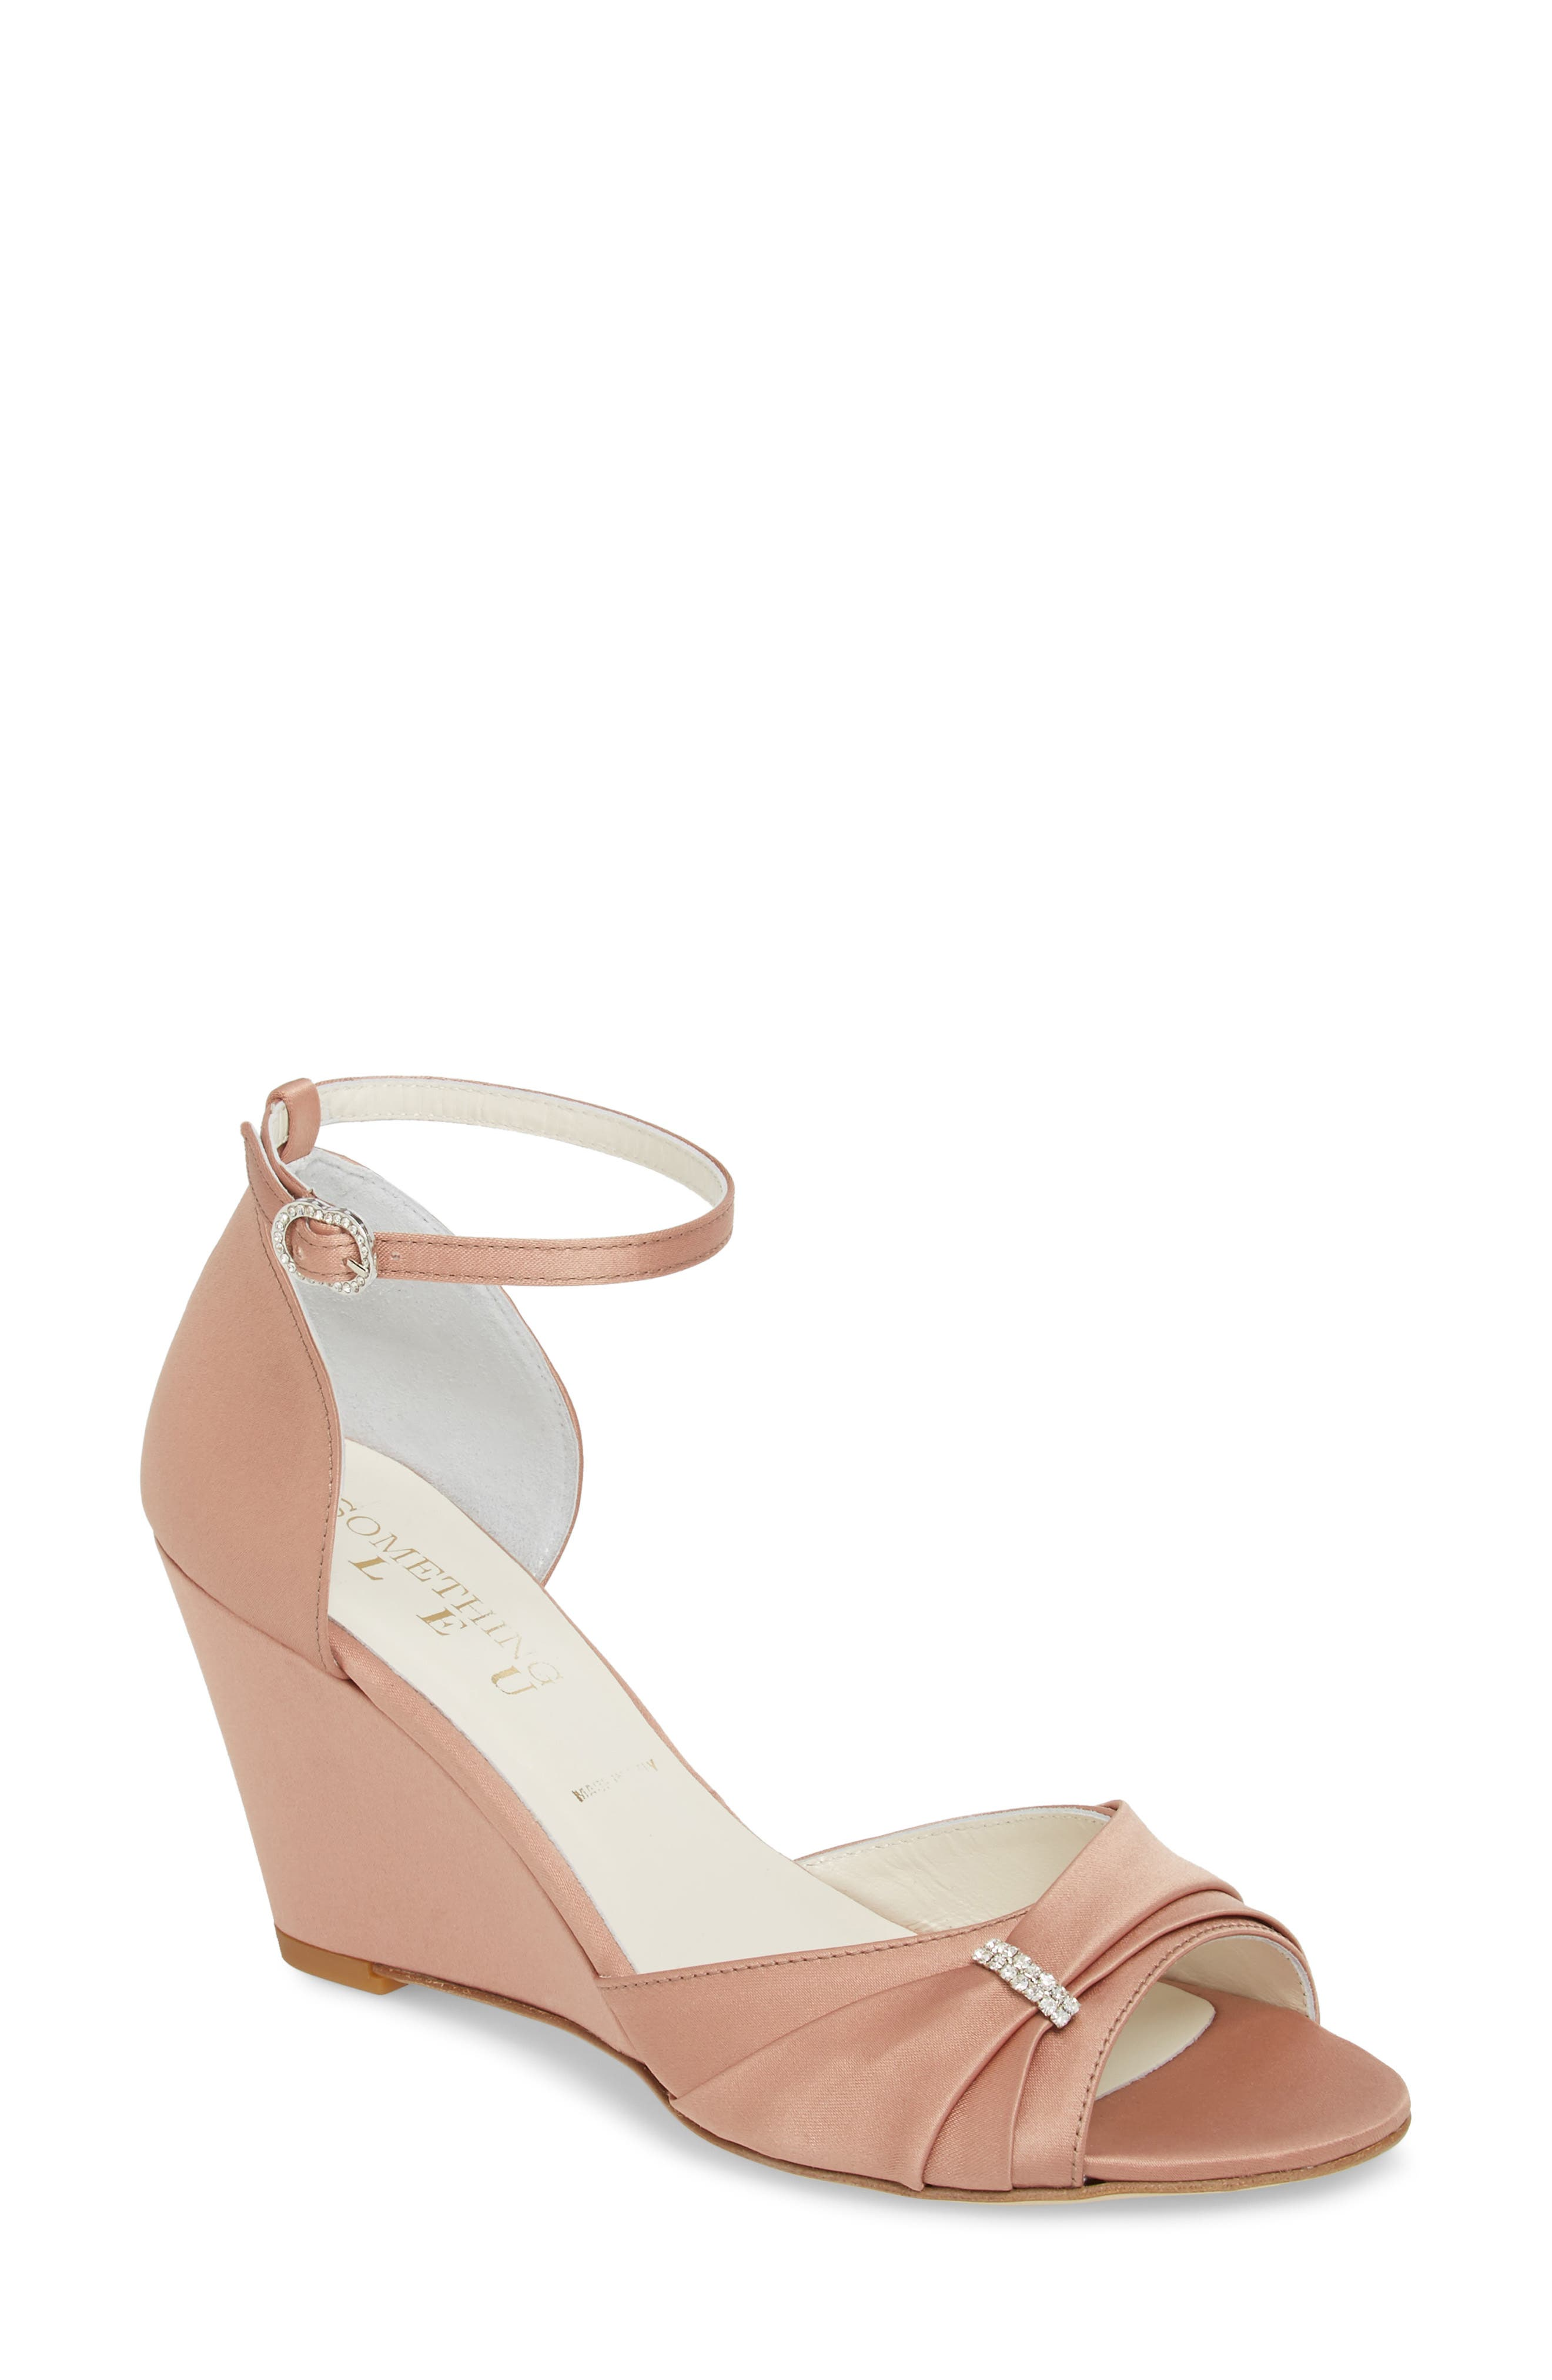 Something Bleu Queenie Ankle Strap Wedge Sandal (Women)